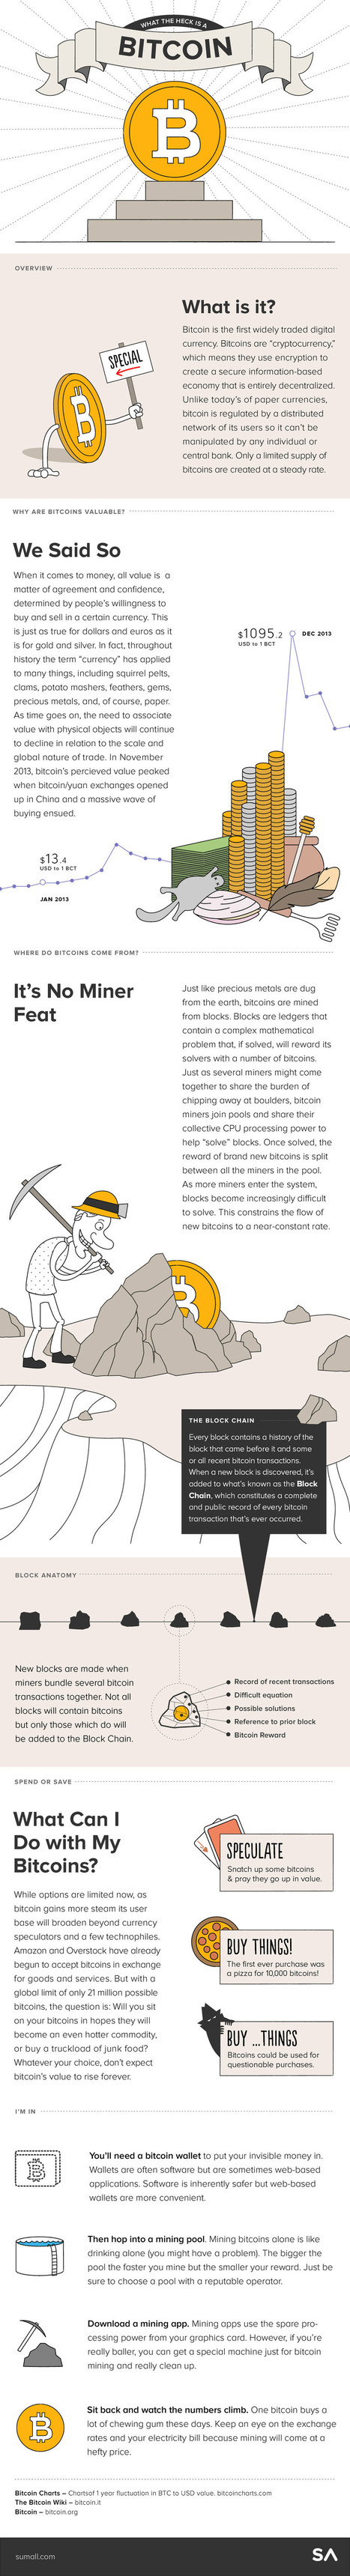 What the Heck Is a Bitcoin | Stuff worth knowing | Scoop.it